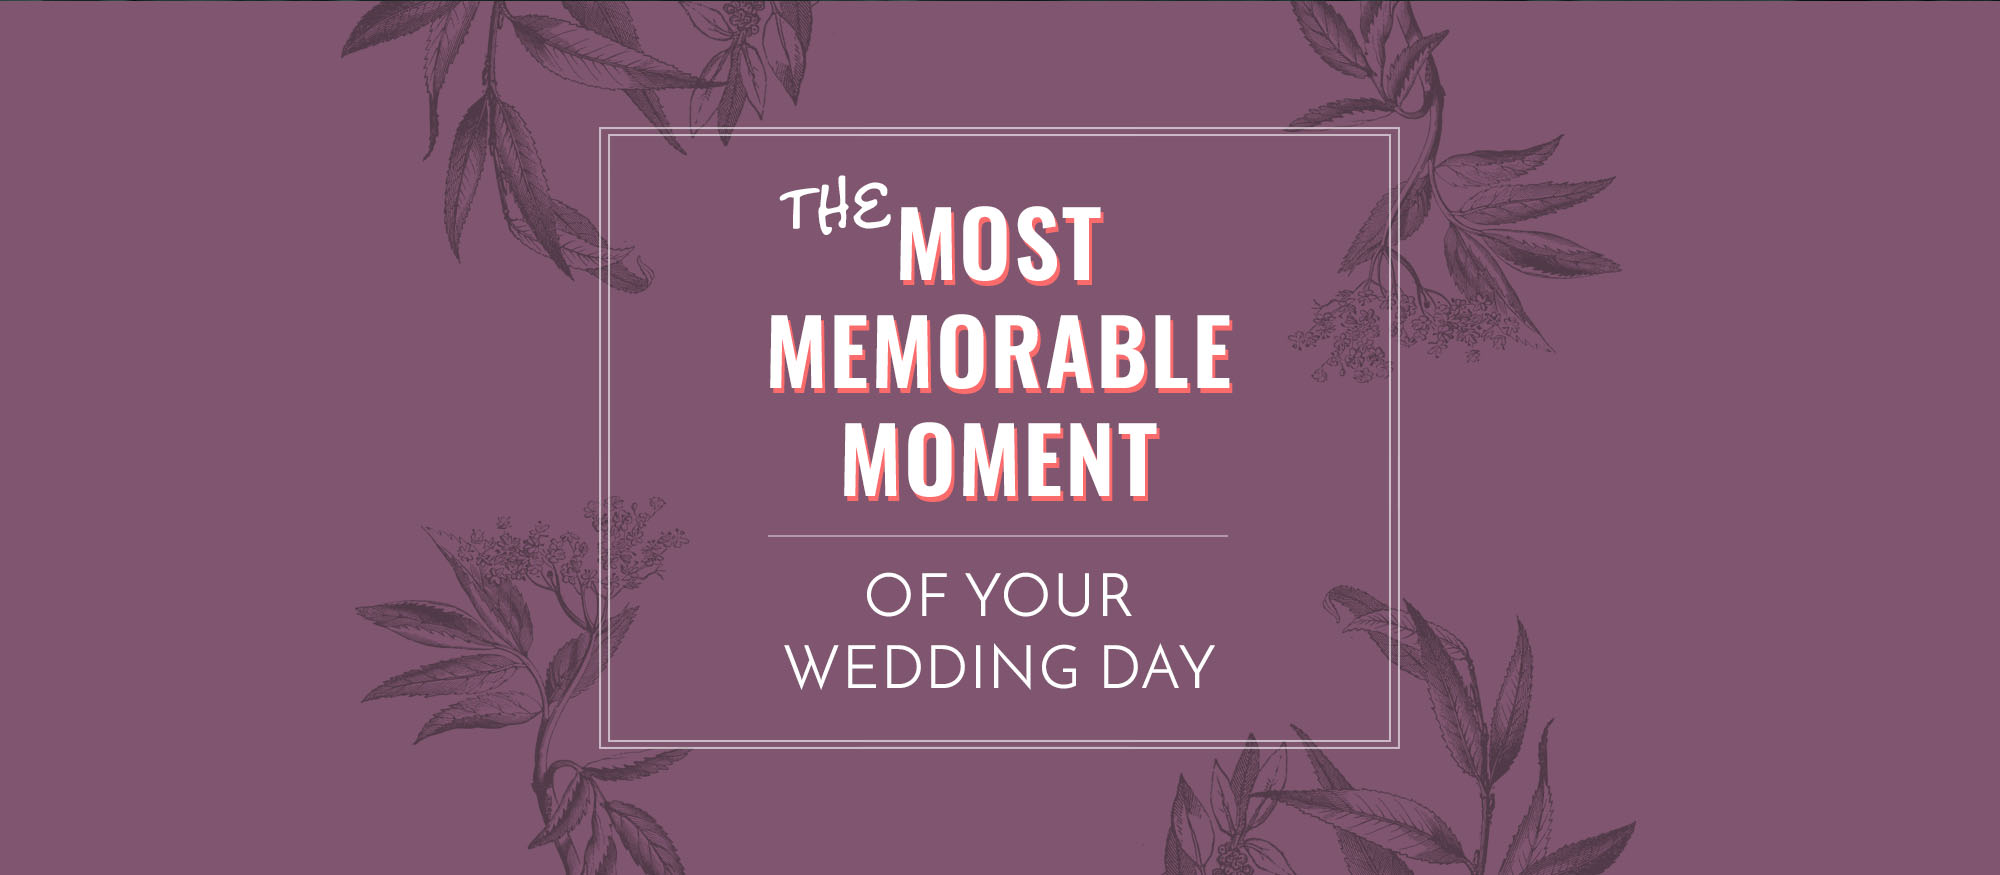 The Most Memorable Moment of your Wedding Day